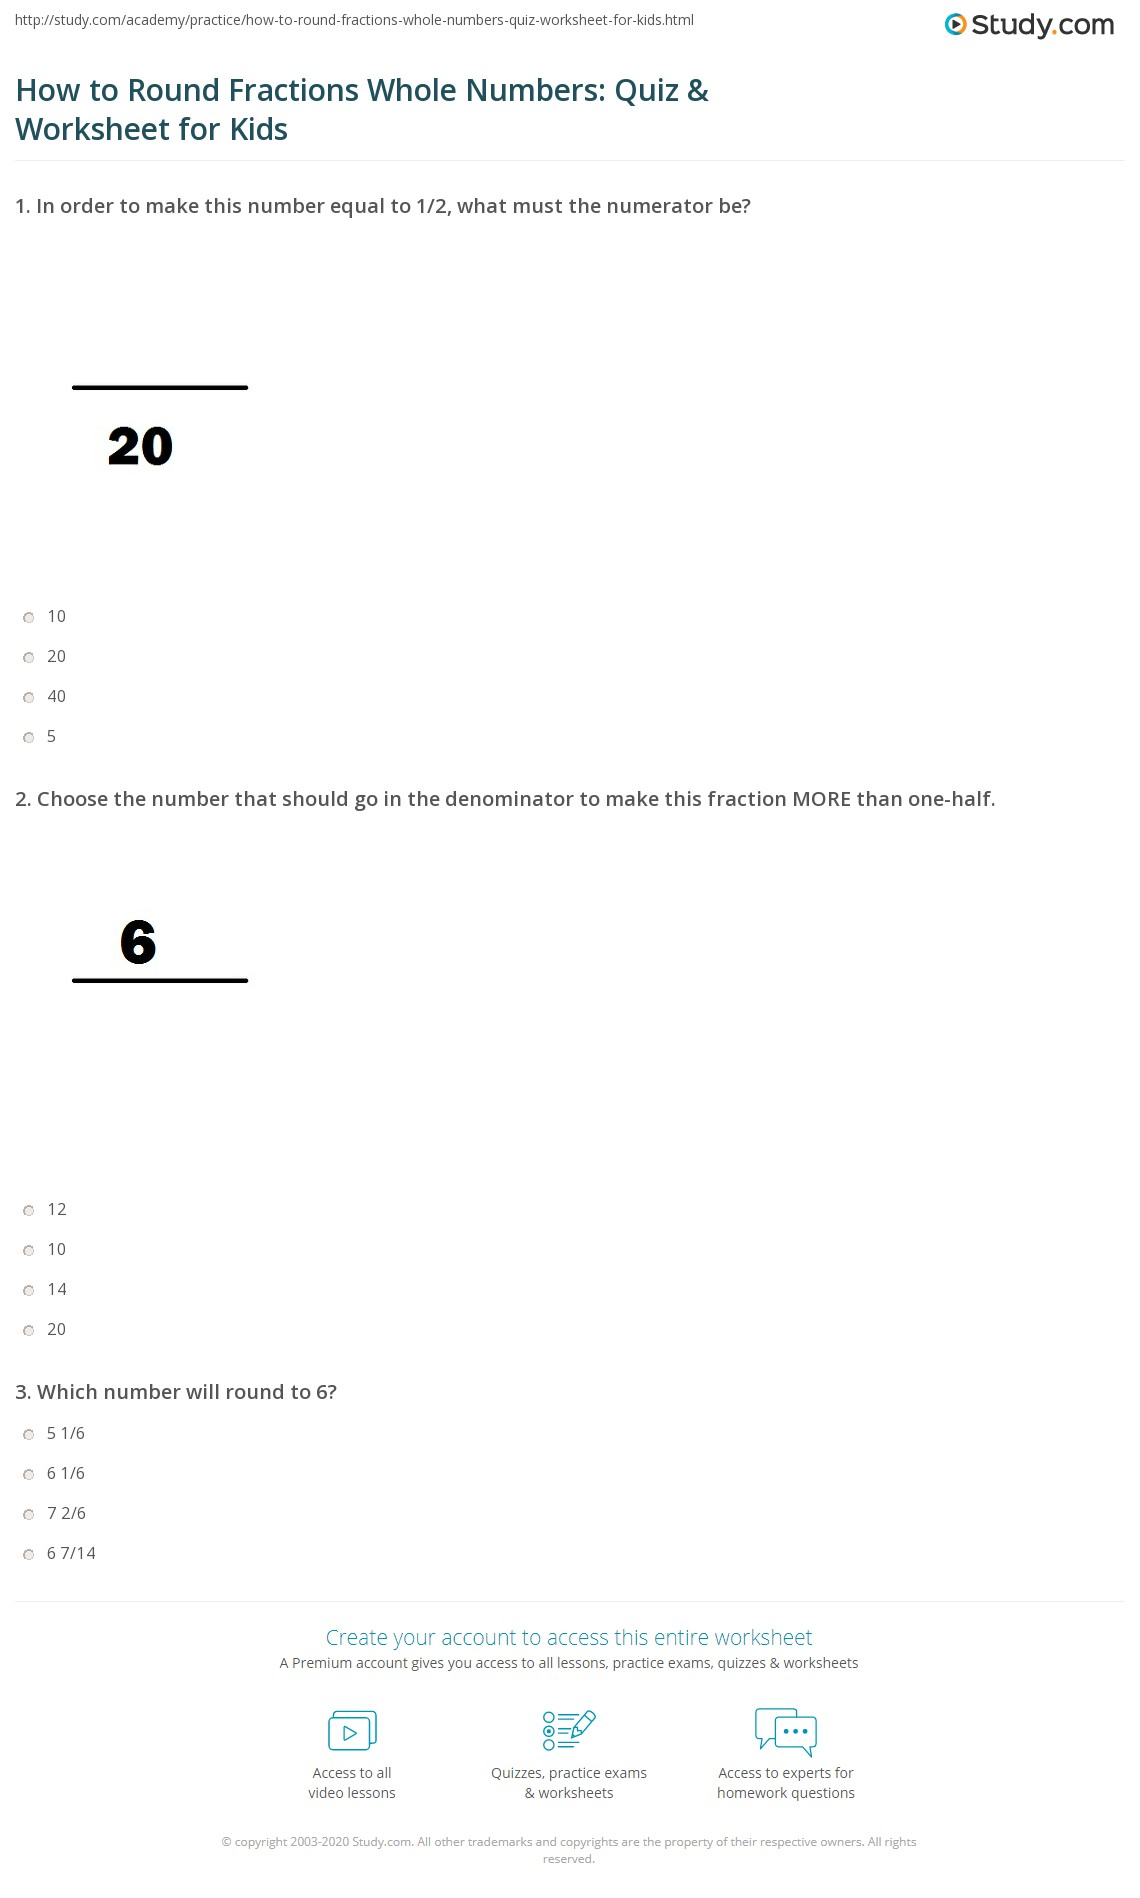 How to Round Fractions Whole Numbers: Quiz & Worksheet for Kids ...